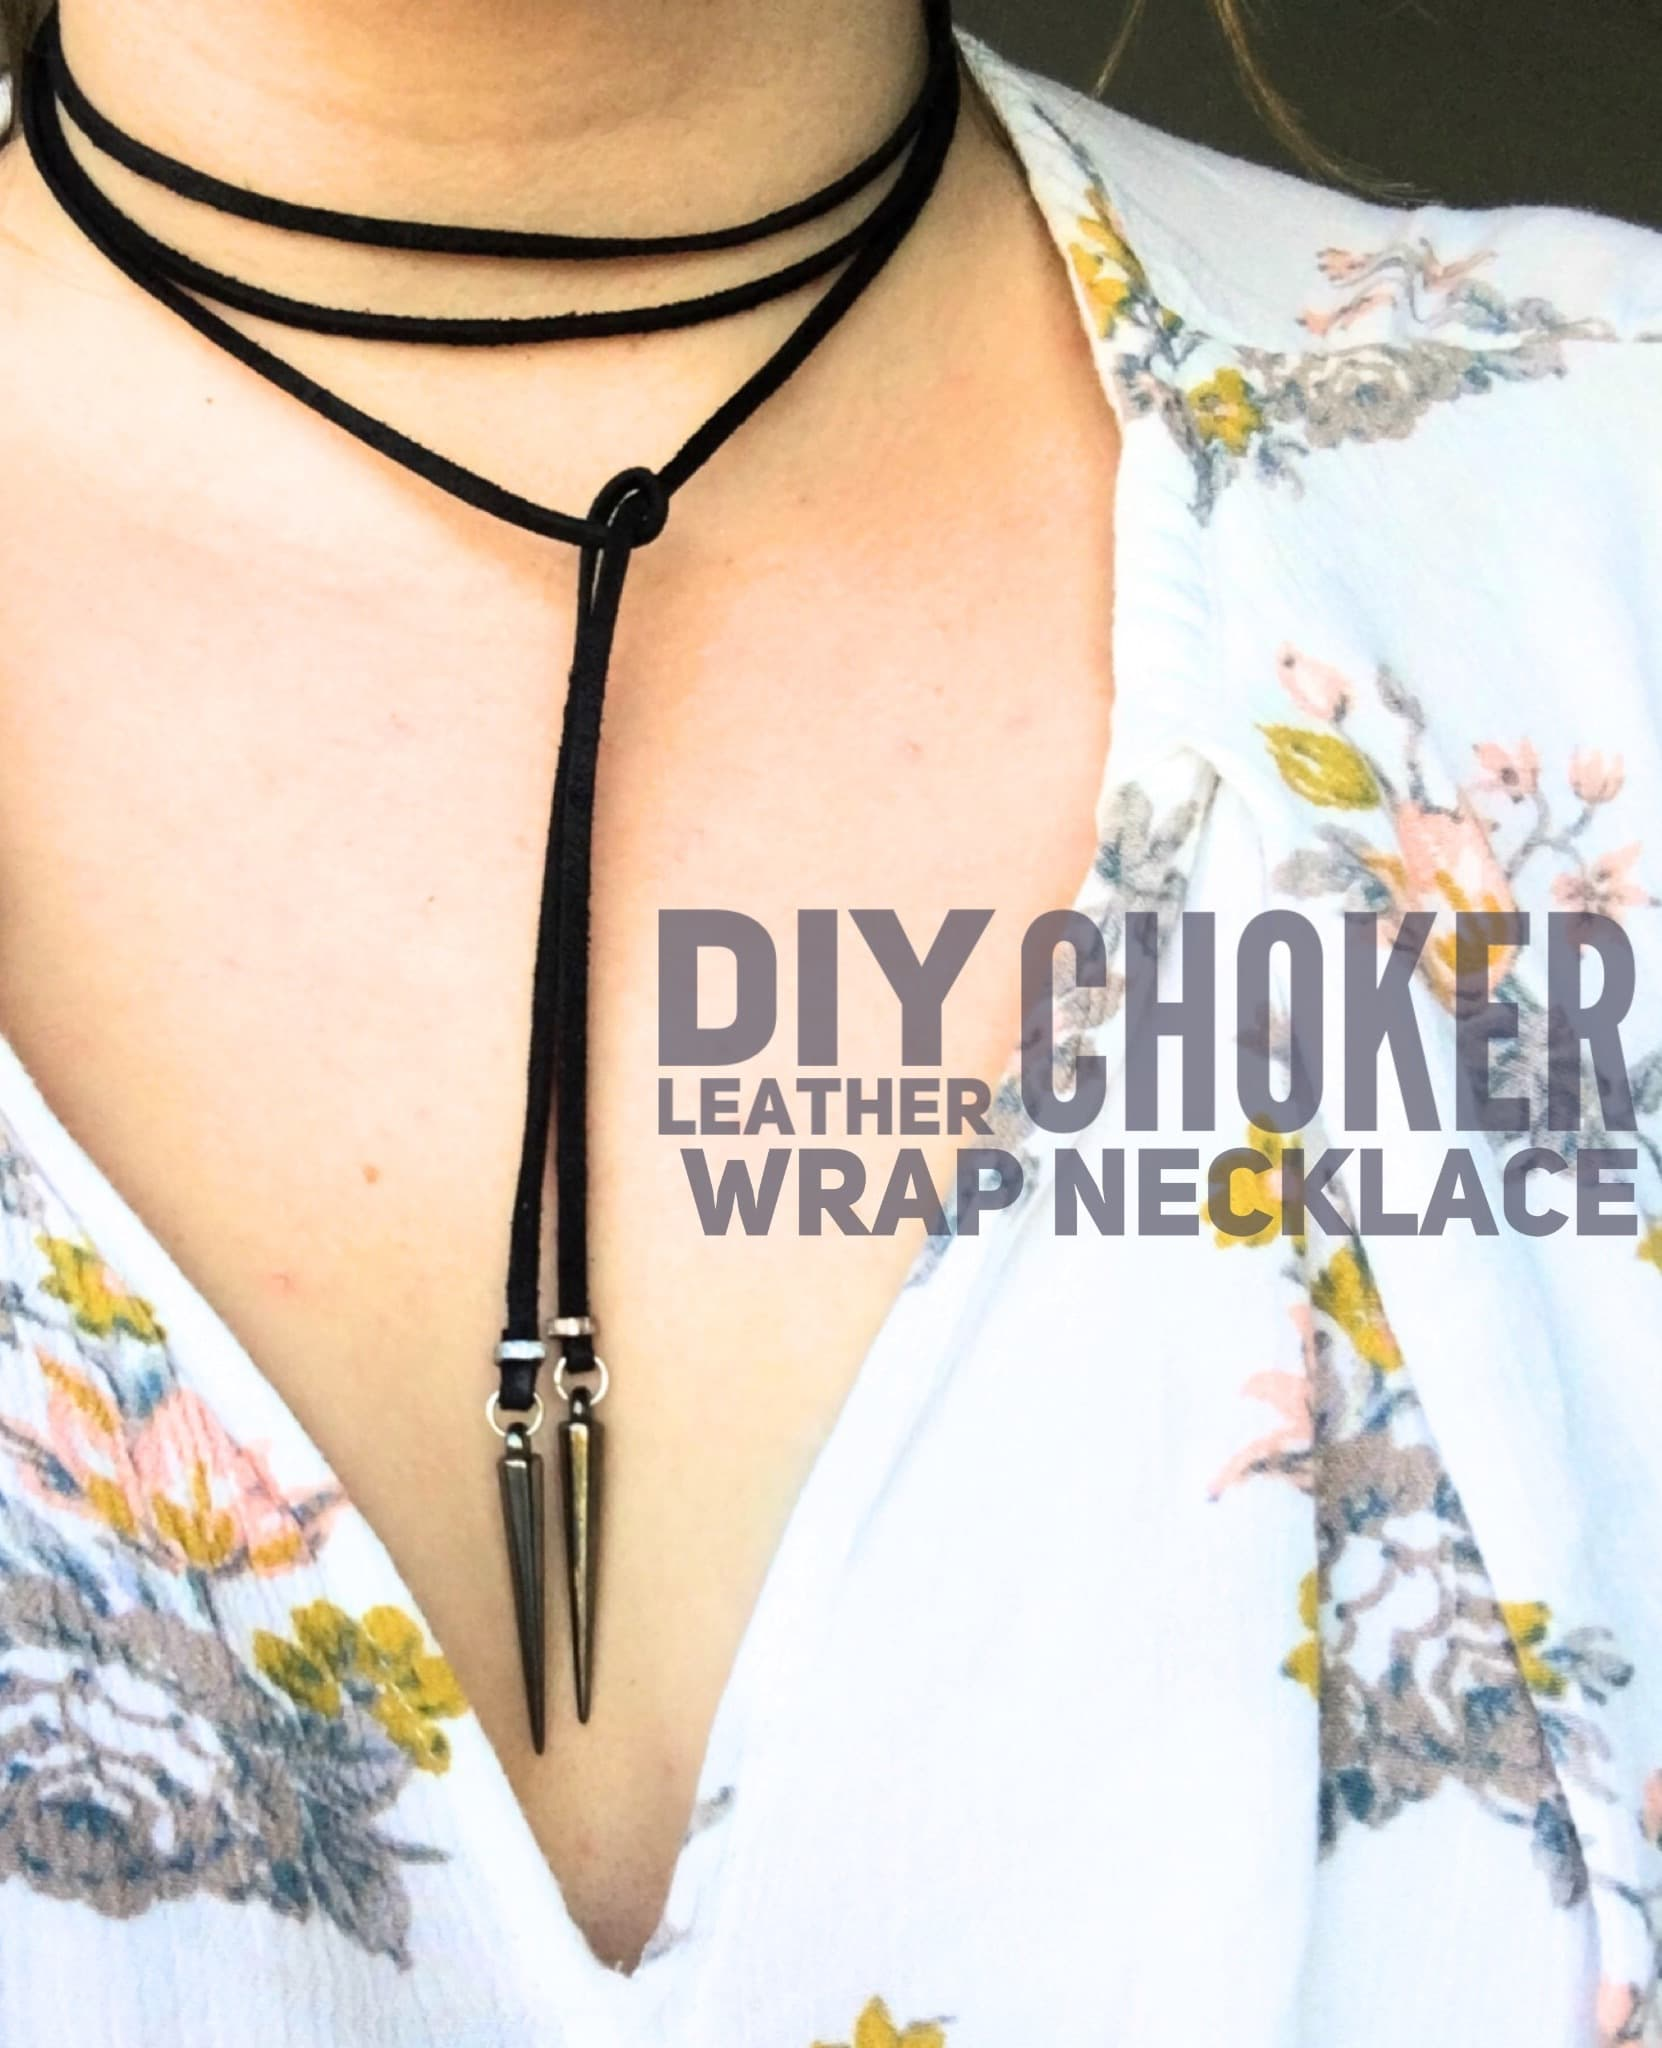 diy-leather-choker-wrap-necklace